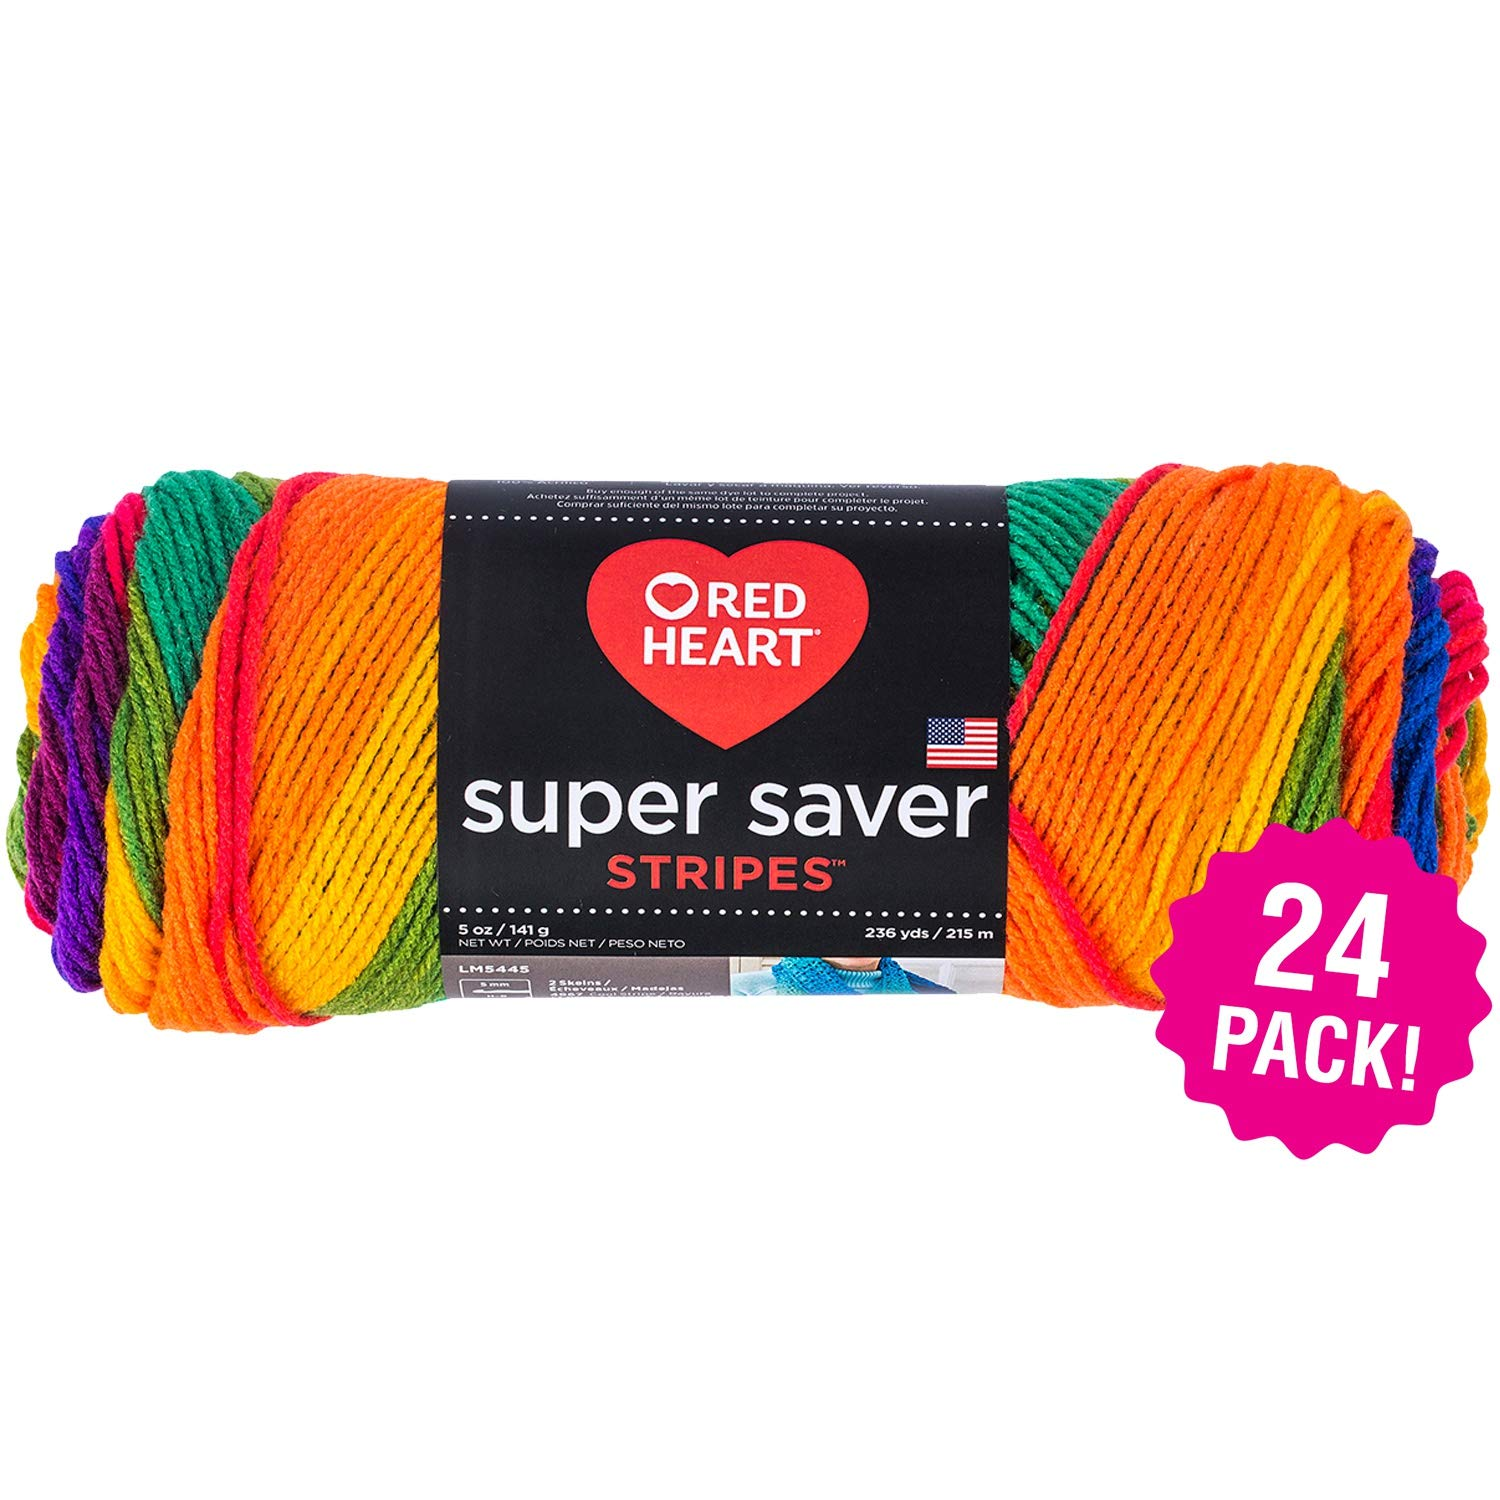 Red Heart 98941 Super Saver Yarn 24/Pk-Favorite Stripe, Pack